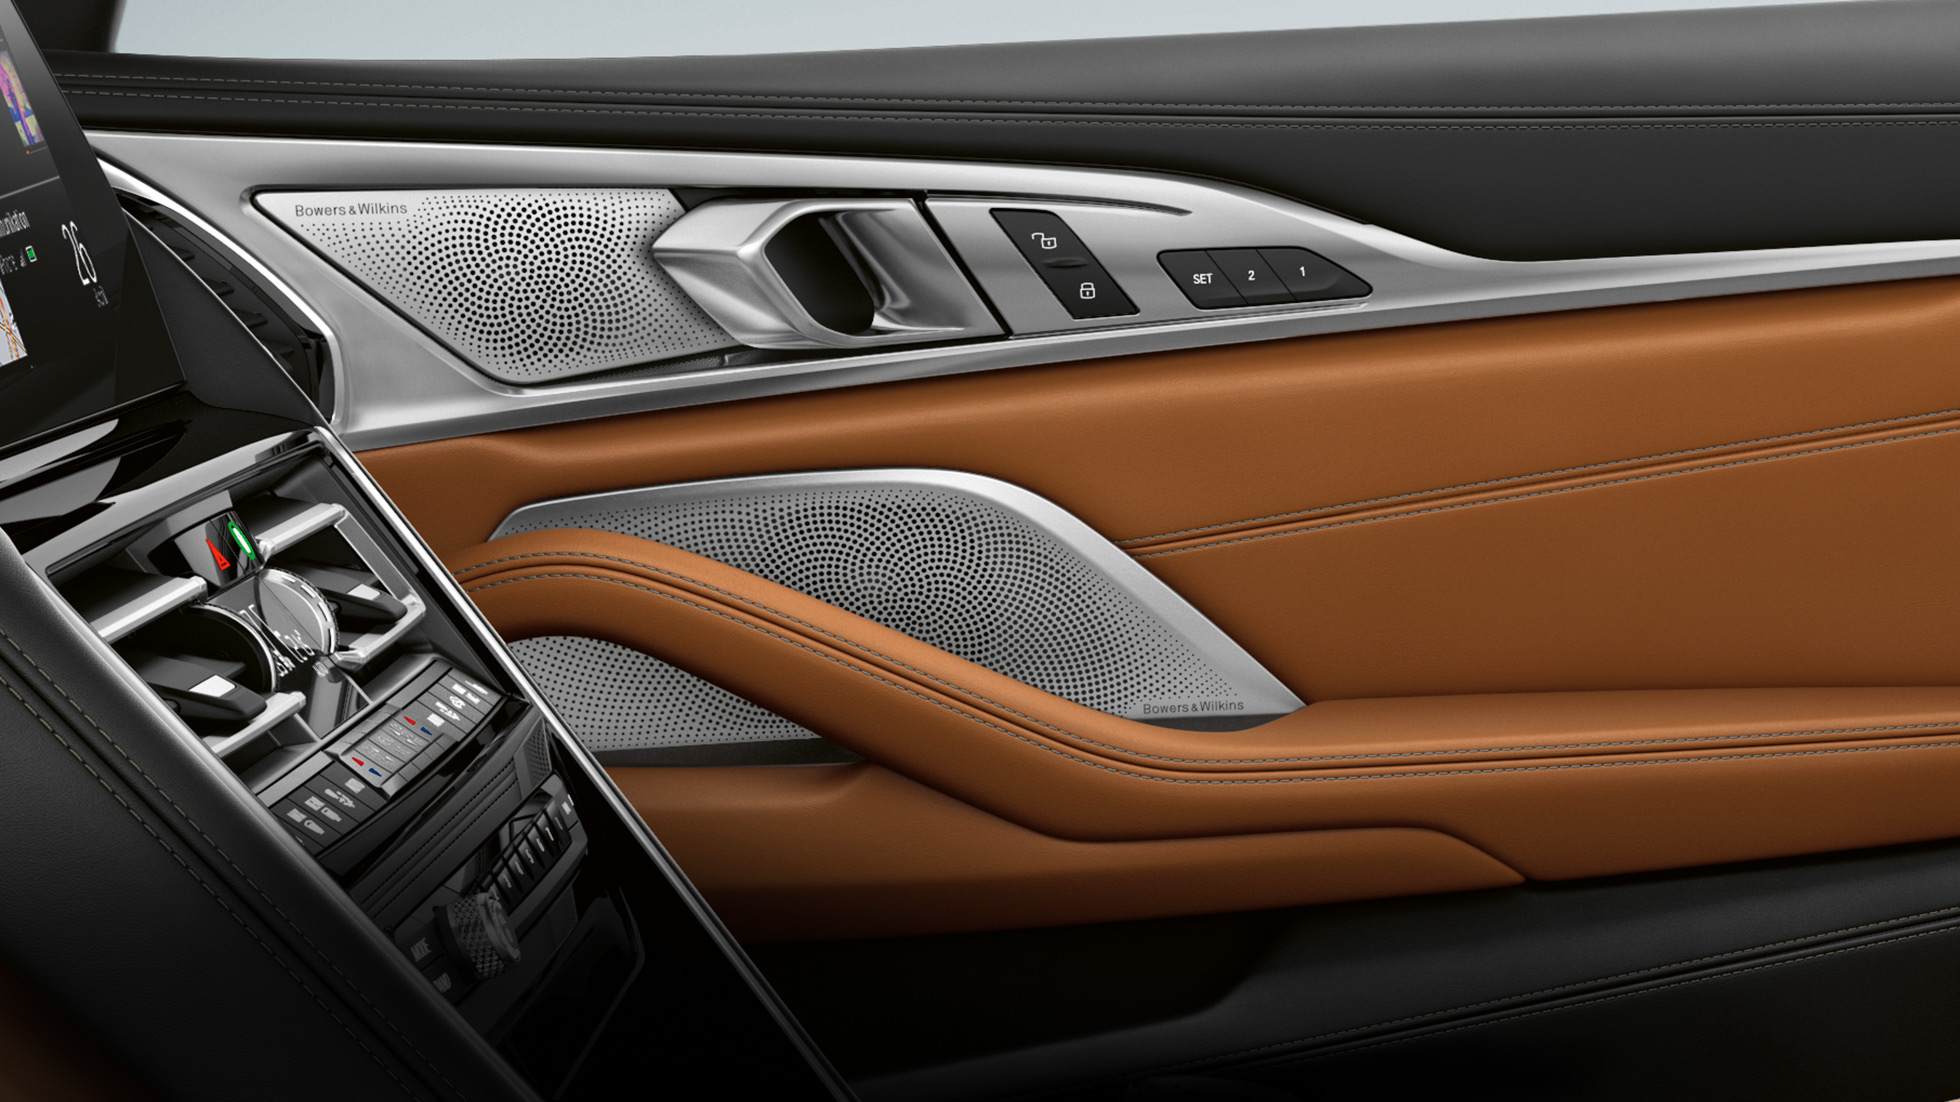 BMW M850i xDrive, интерьер, аудиосистема Bowers & Wilkins Diamond Surround Sound.